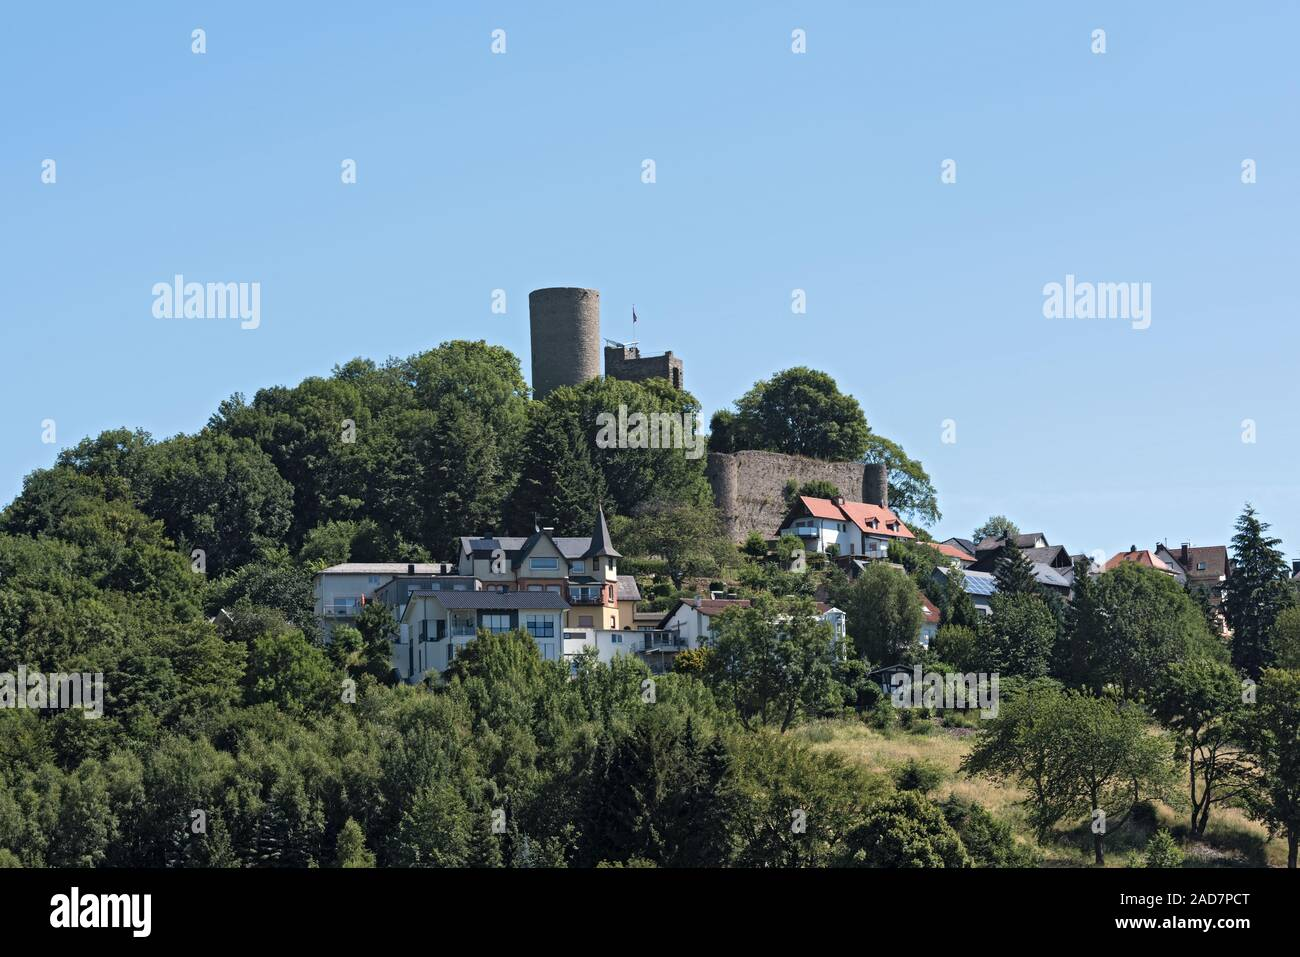 View of the village and the castle ruins Oberreifenberg im Taunus, Germany Stock Photo